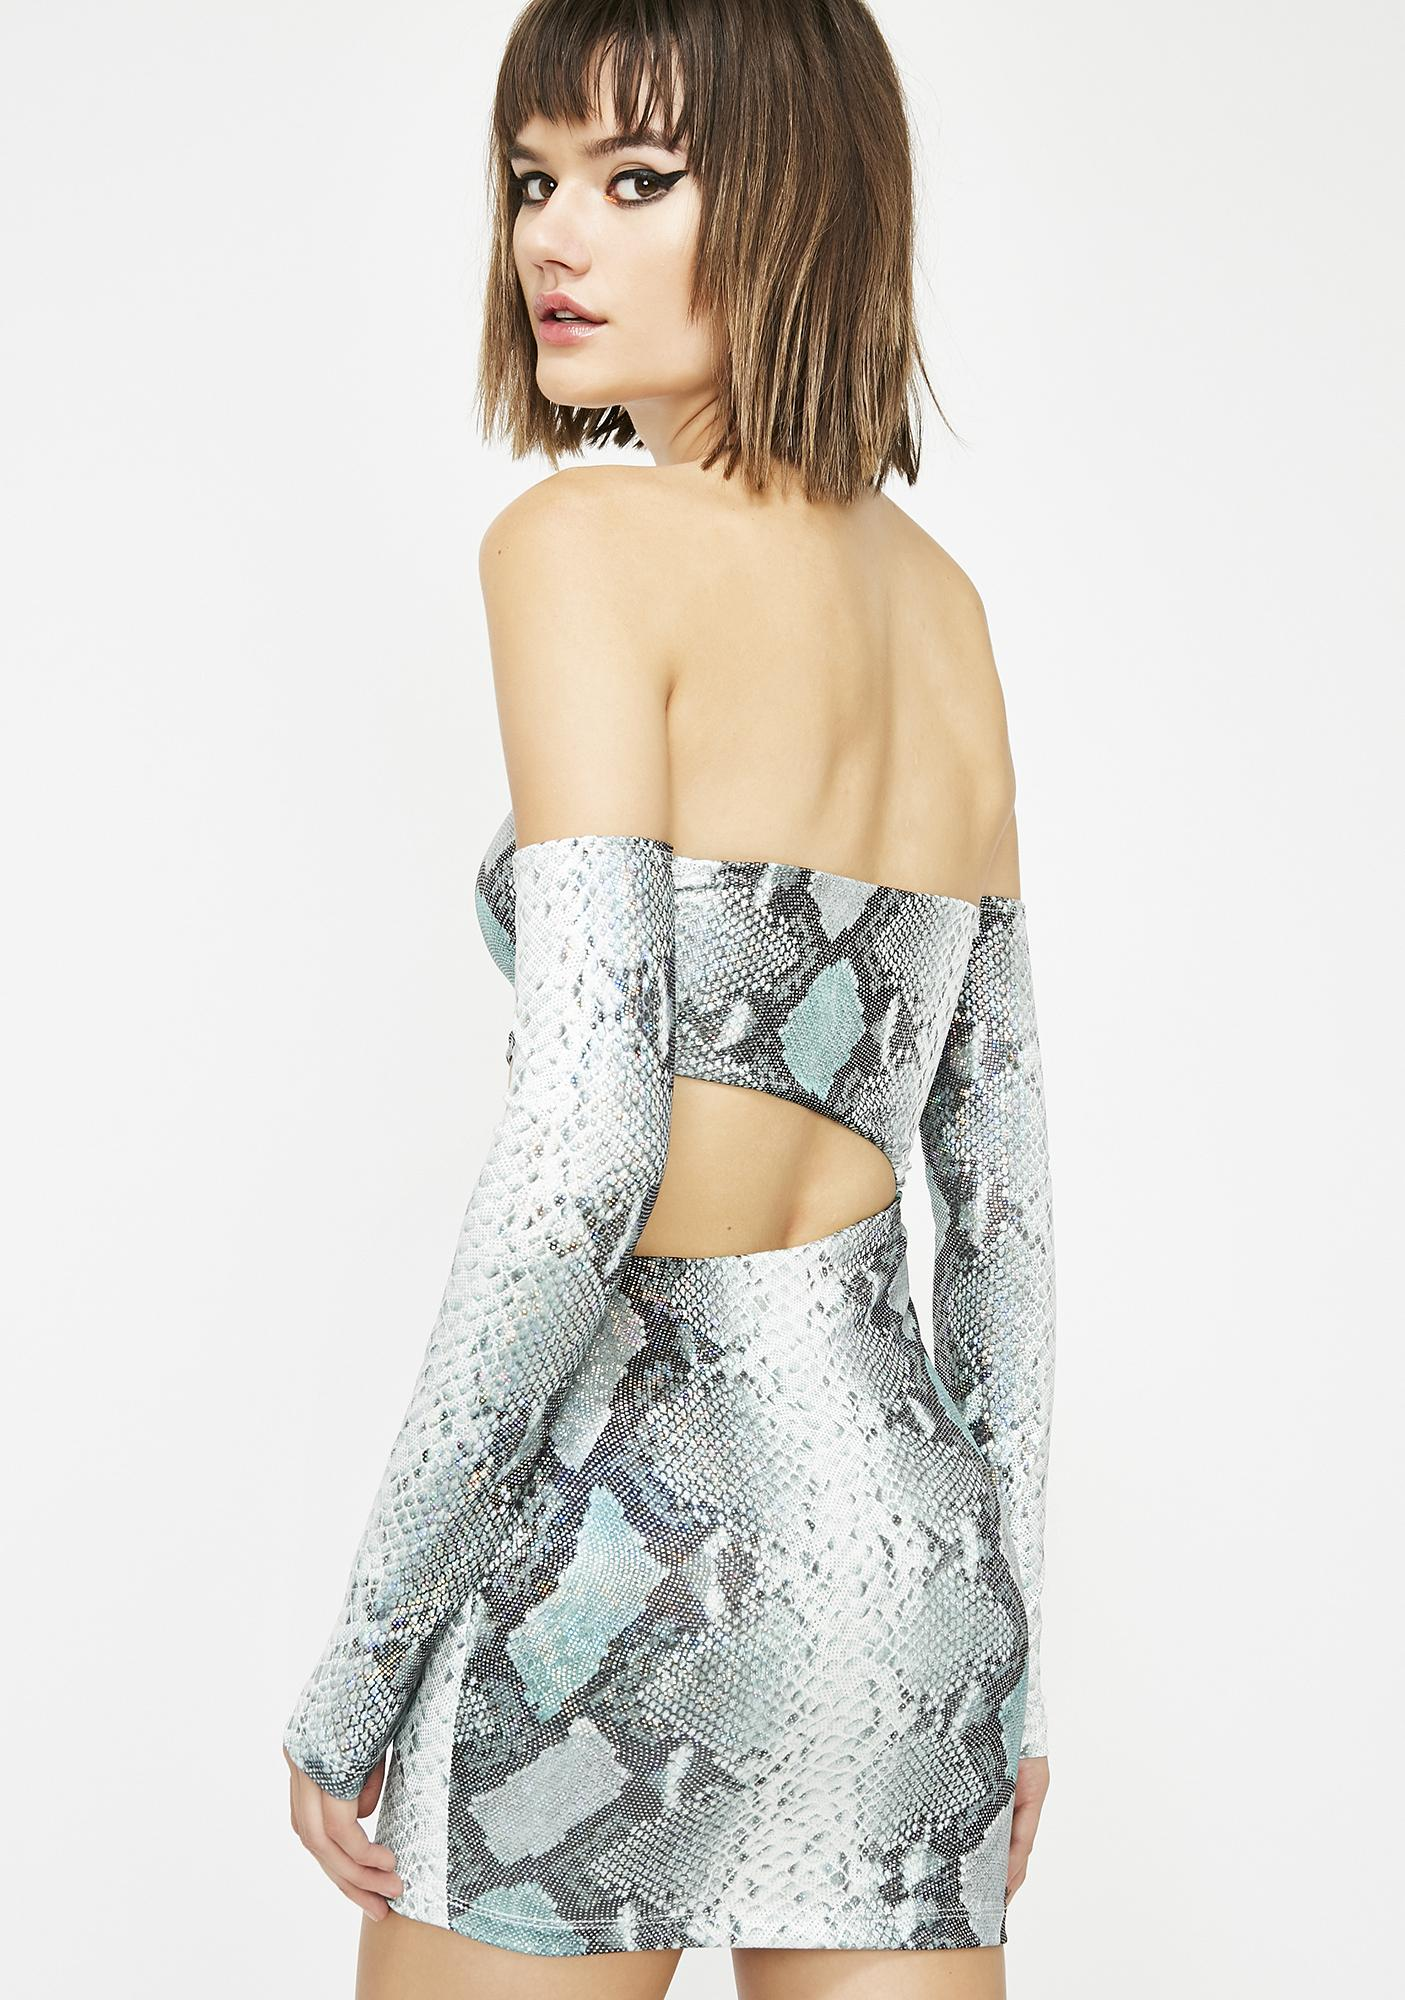 Toxic Temptress Hologram Dress